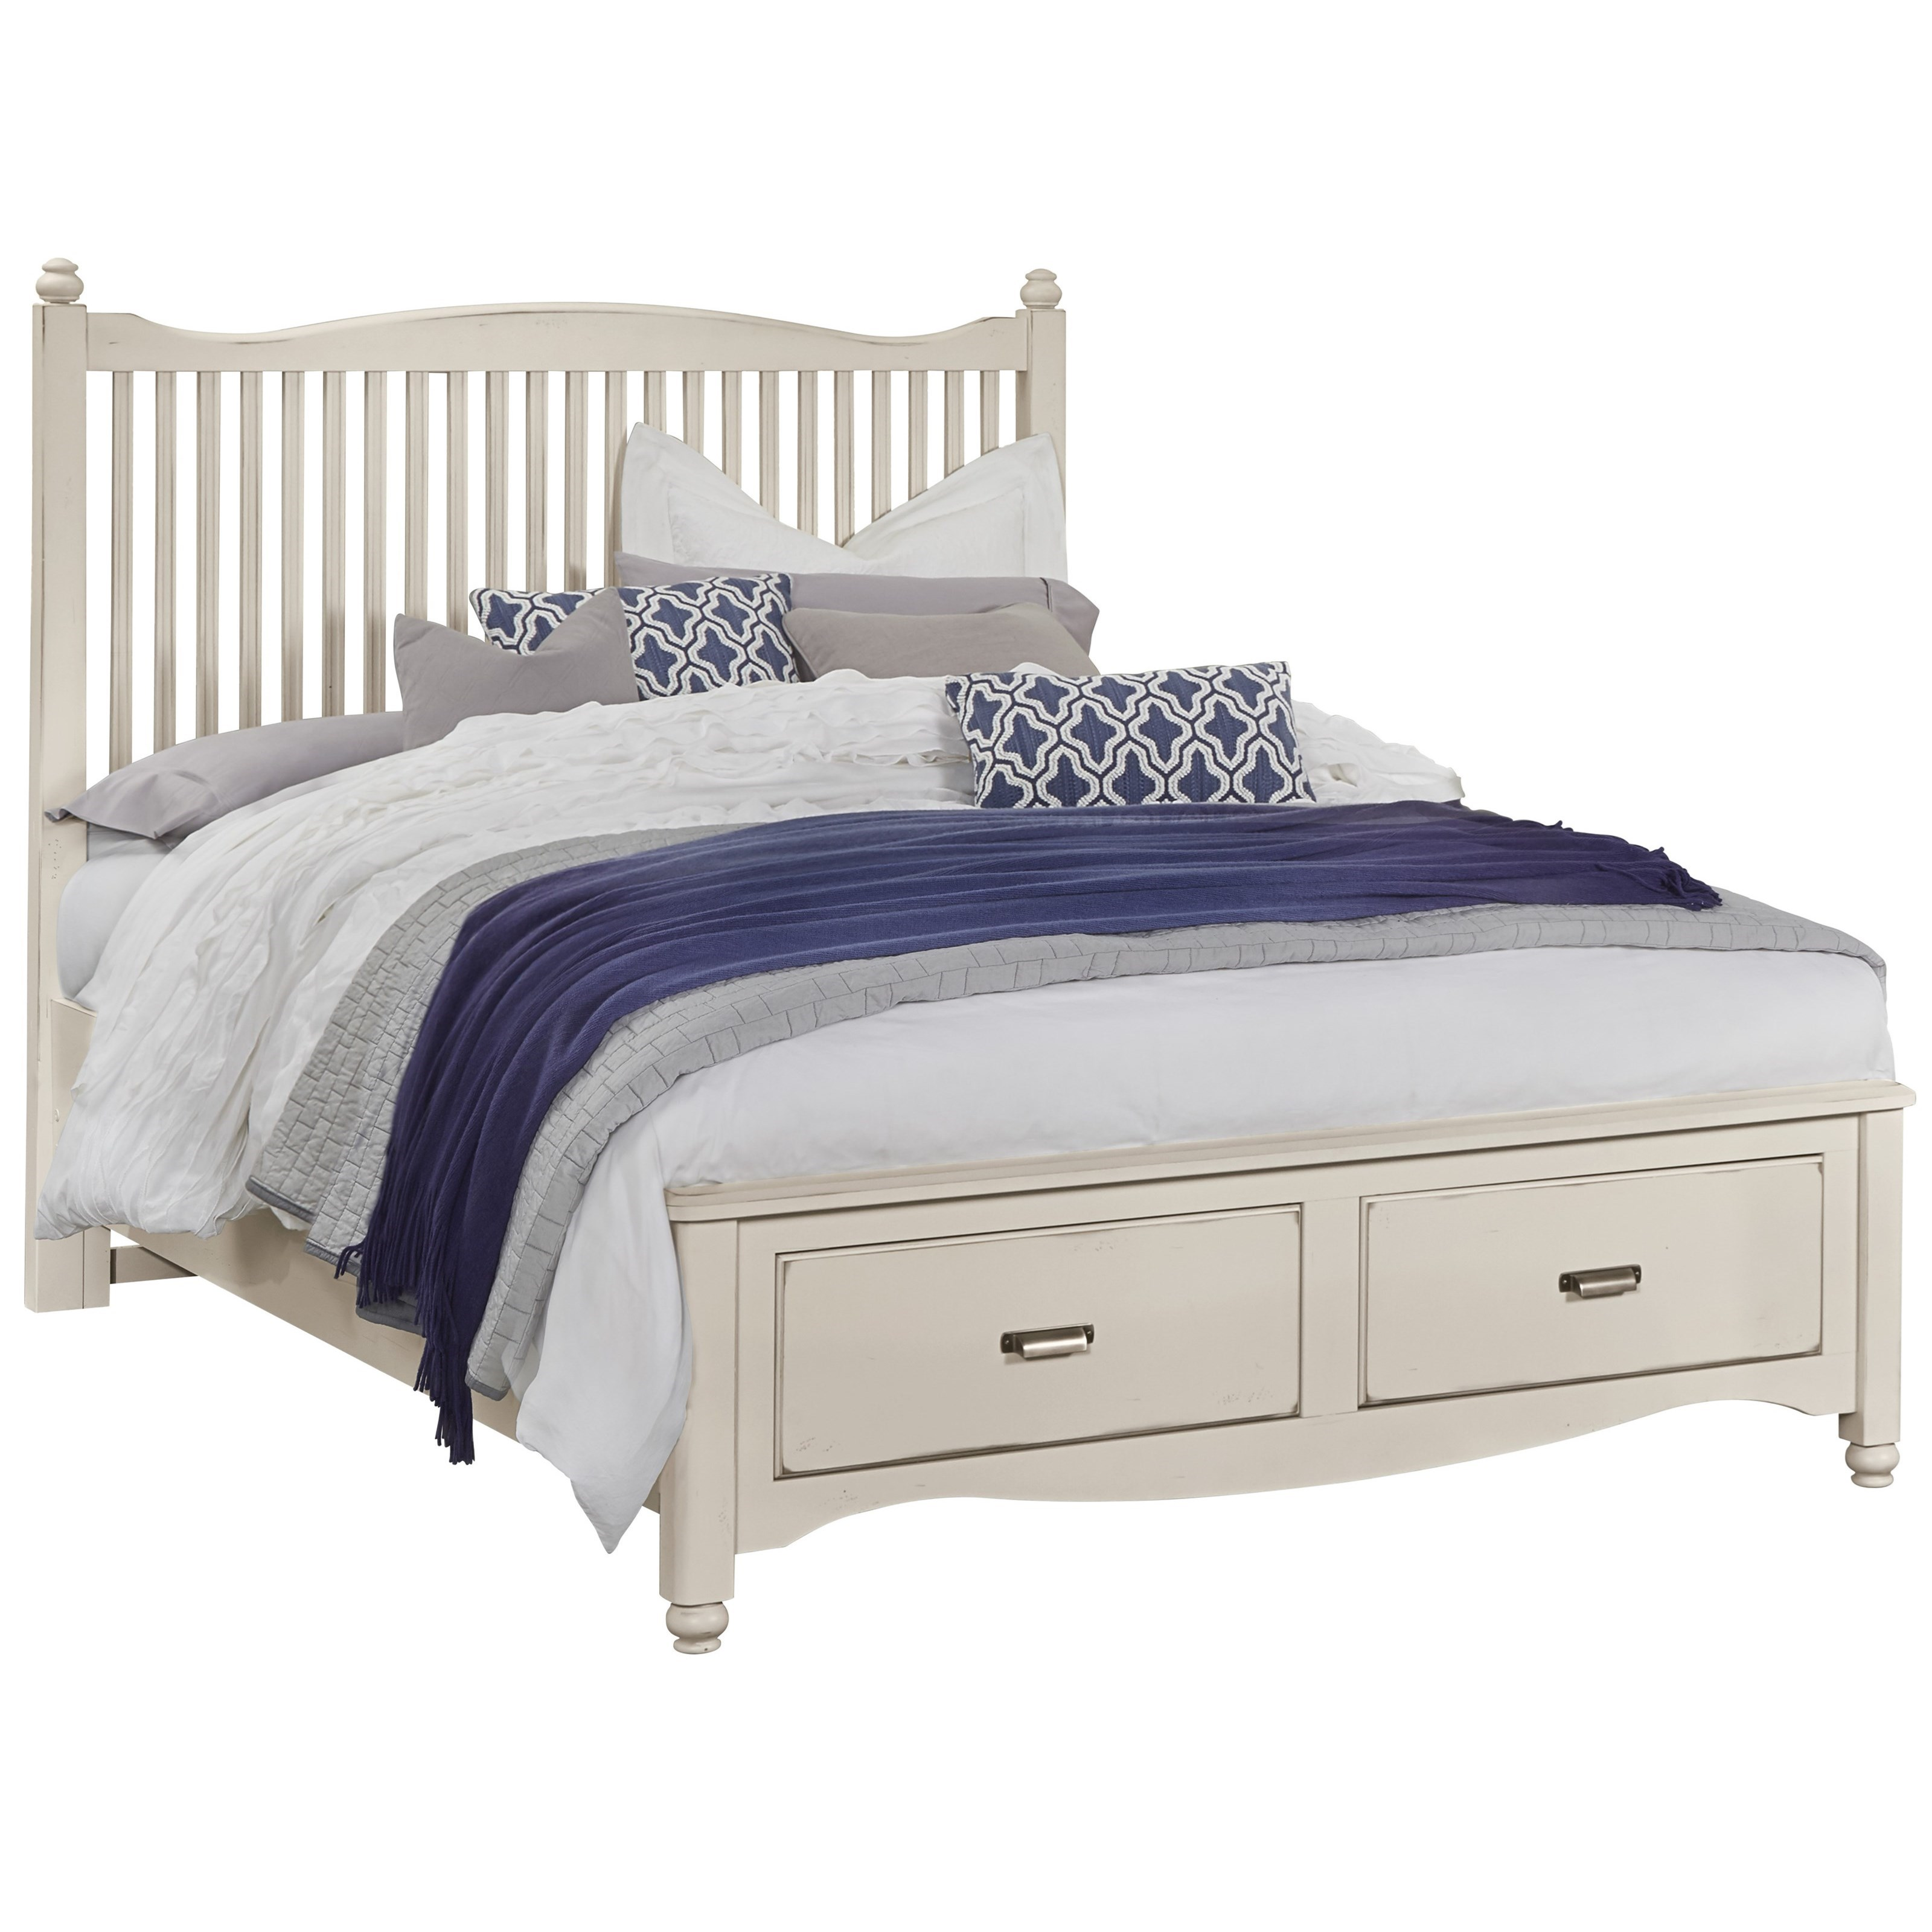 Vaughan Bassett American Maple Solid Wood Queen Slat Storage Bed Value City Furniture